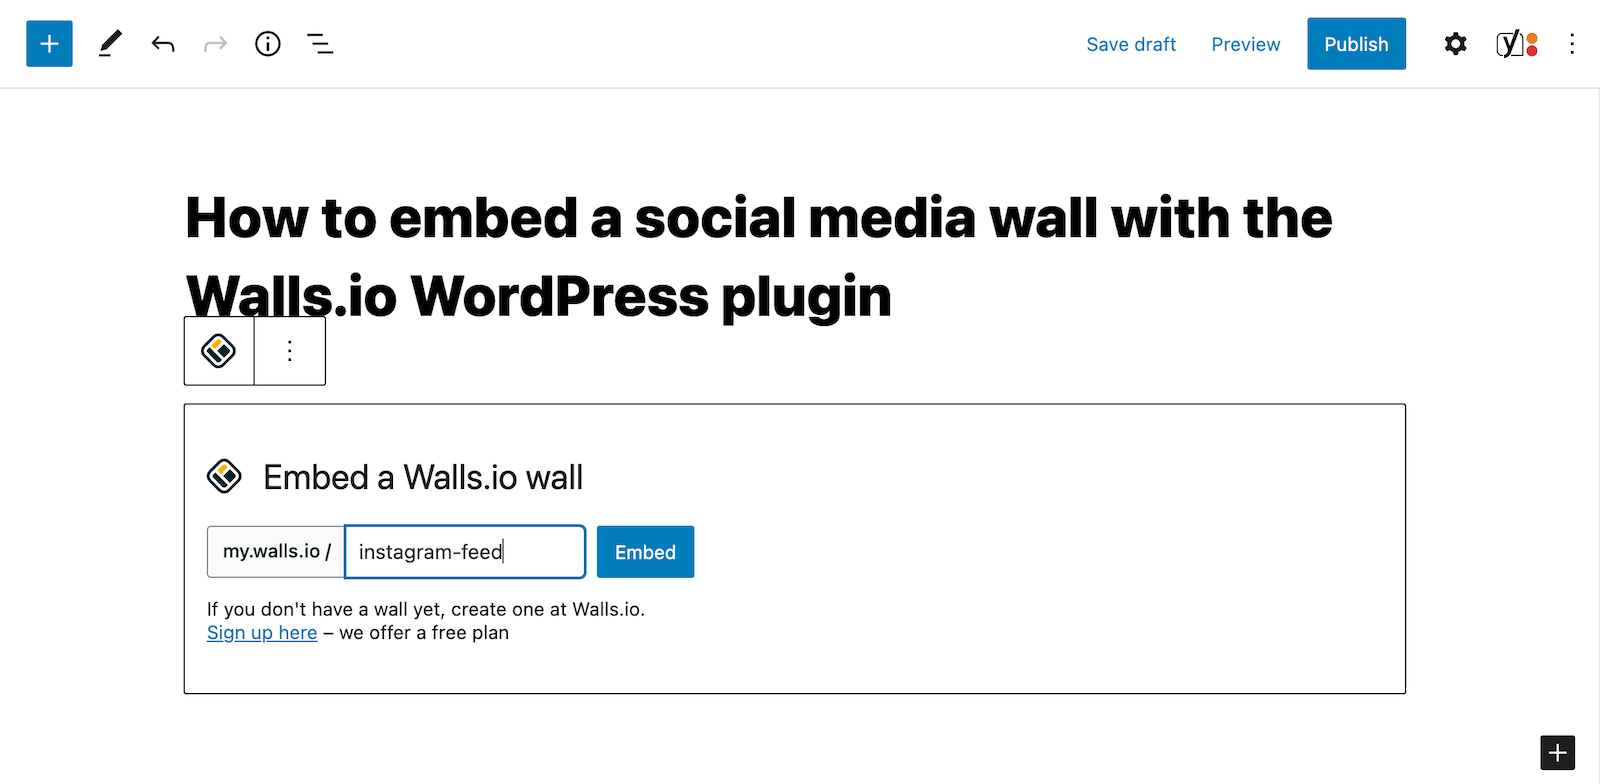 Screenshot of a page in the WordPress backend that shows where to add the social wall name to the plugin to embed the wall on the page.